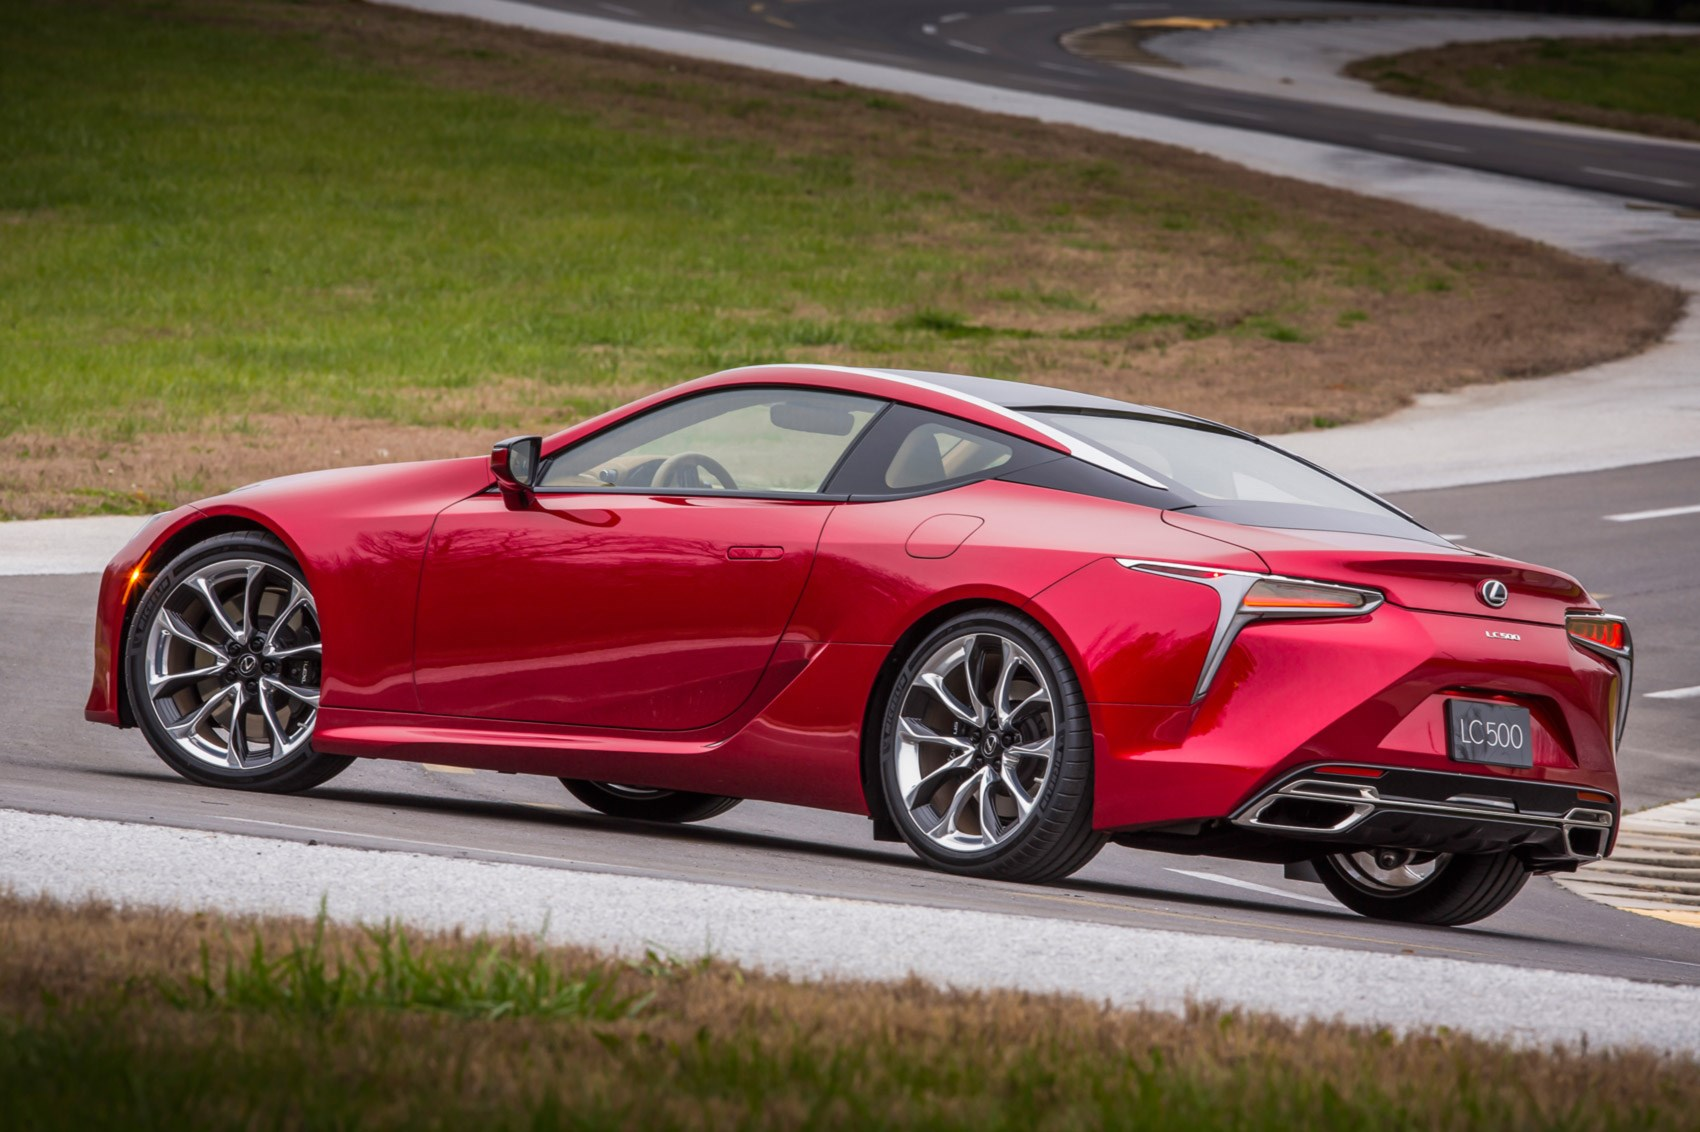 Lexus rolls out the big guns new 467bhp LC 500 coupe revealed in